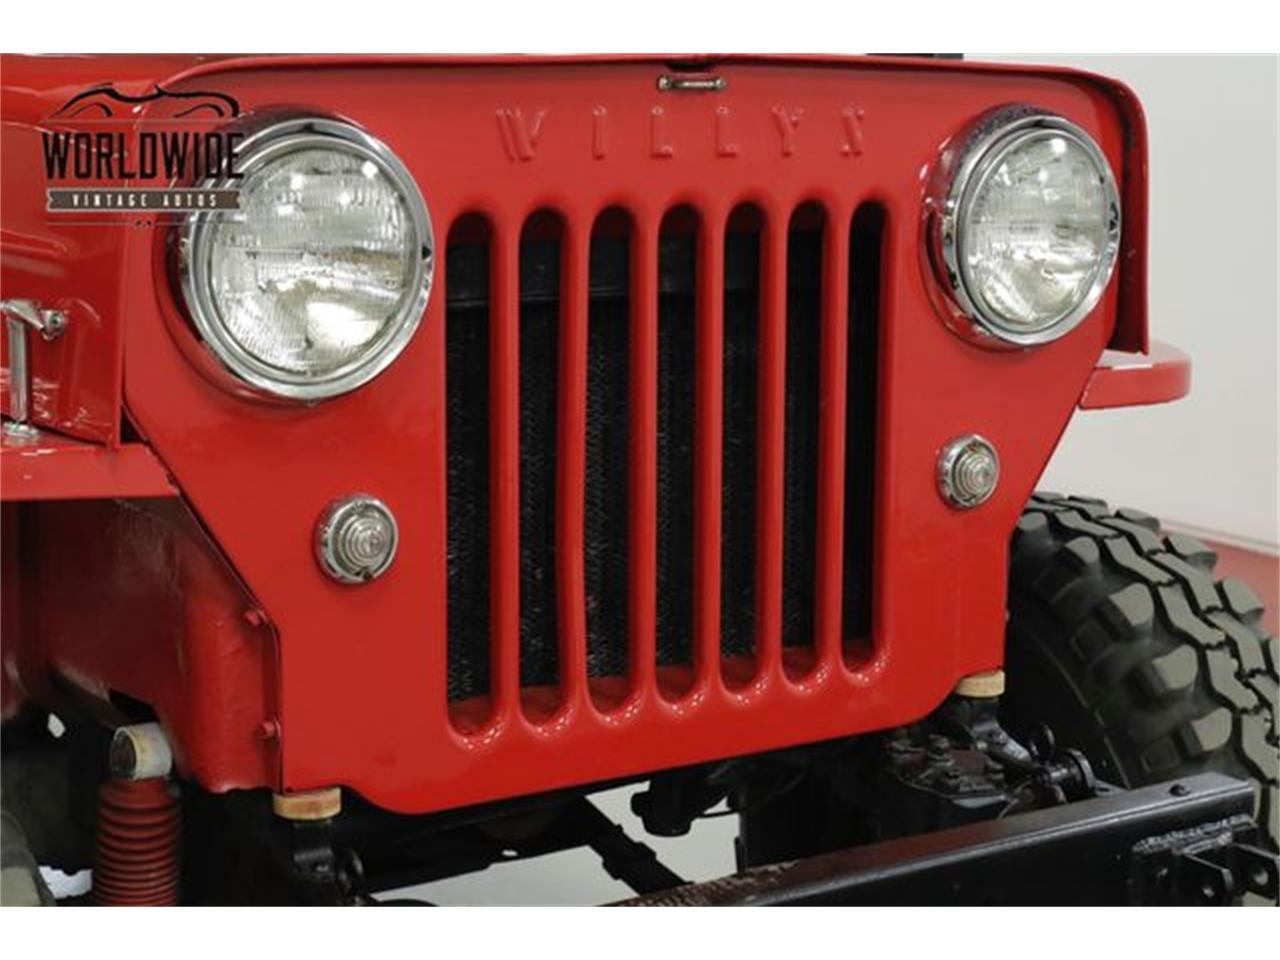 Large Picture of '62 Jeep - $12,900.00 Offered by Worldwide Vintage Autos - PSGE